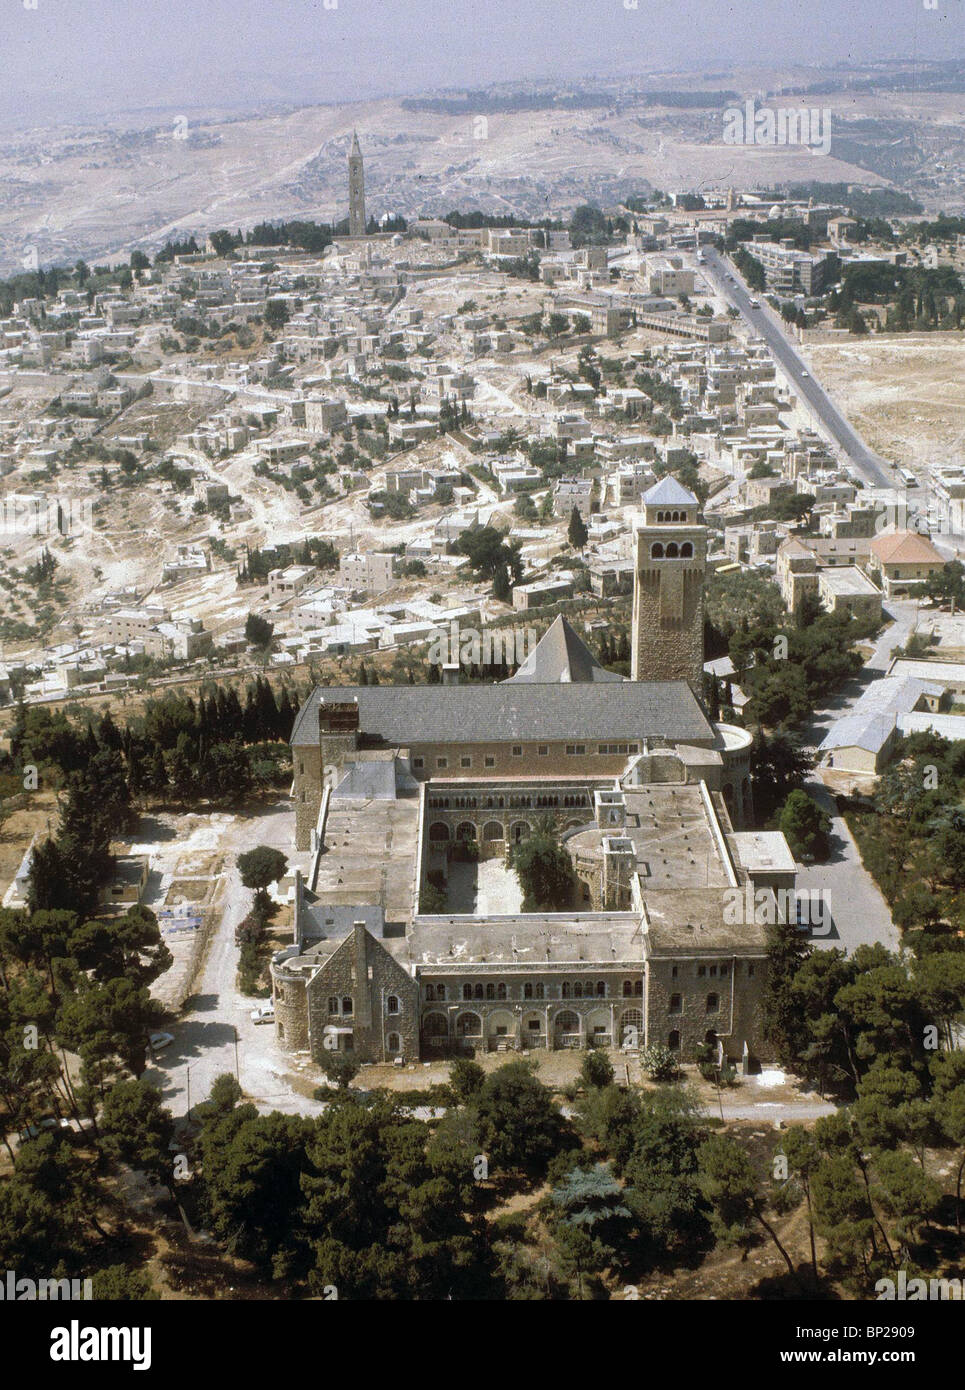 AUGUSTA VICTORIA - LOCATED ON THE MT. OF OLIVES IT WAS BUILT BY THE GERMAN KAISER WILHELM II. IN 1898 TO SERVE AS - Stock Image